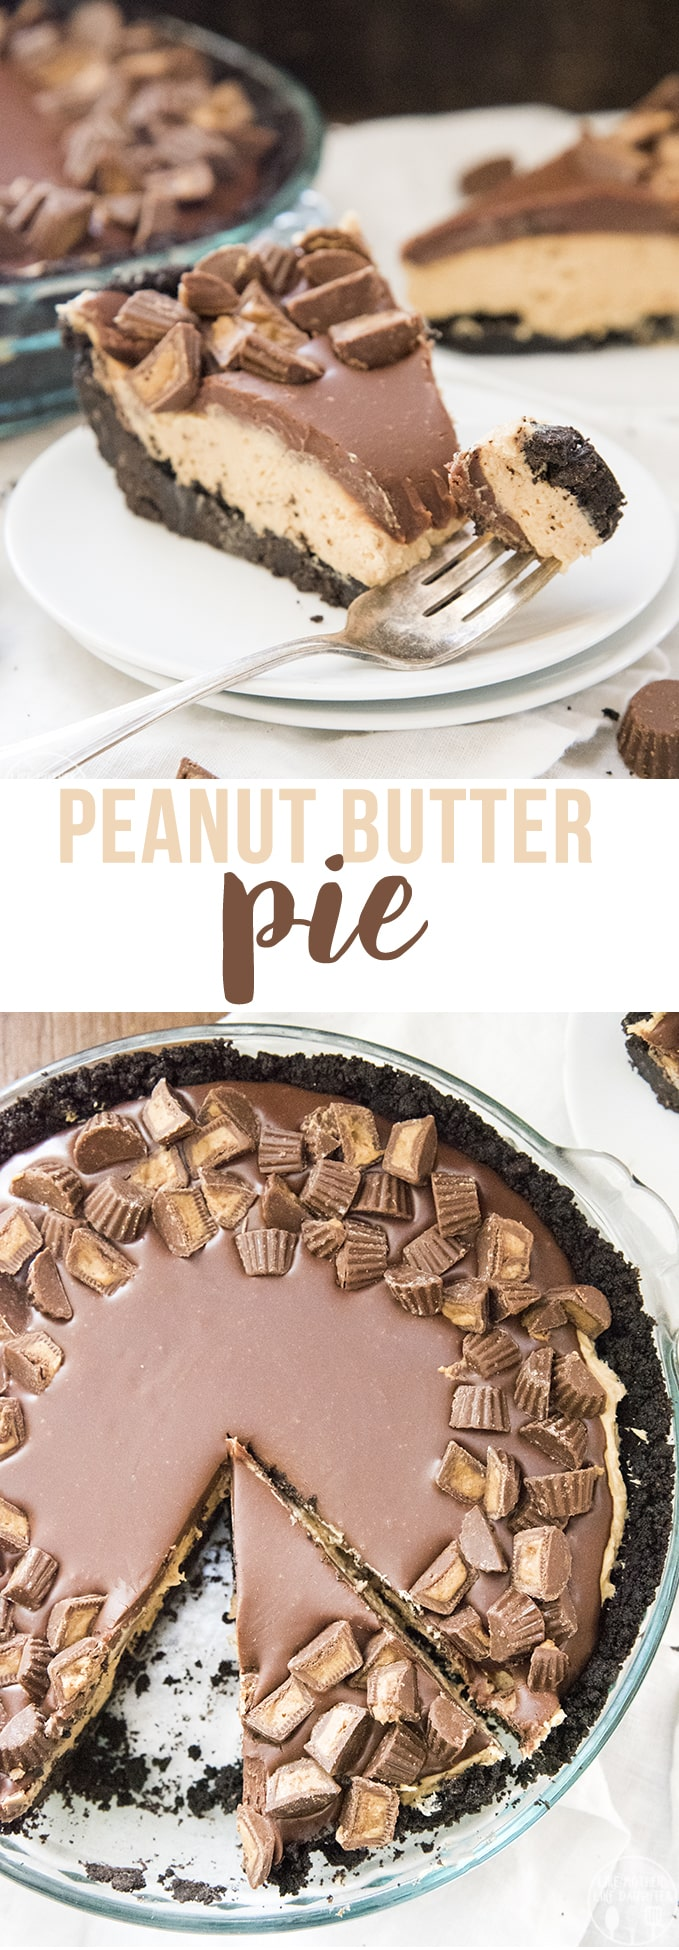 Peanut Butter Pie is a delicious no bake dessert, with an oreo crust, and creamy peanut butter filling, all topped with a rich chocolate ganache and peanut butter cups.